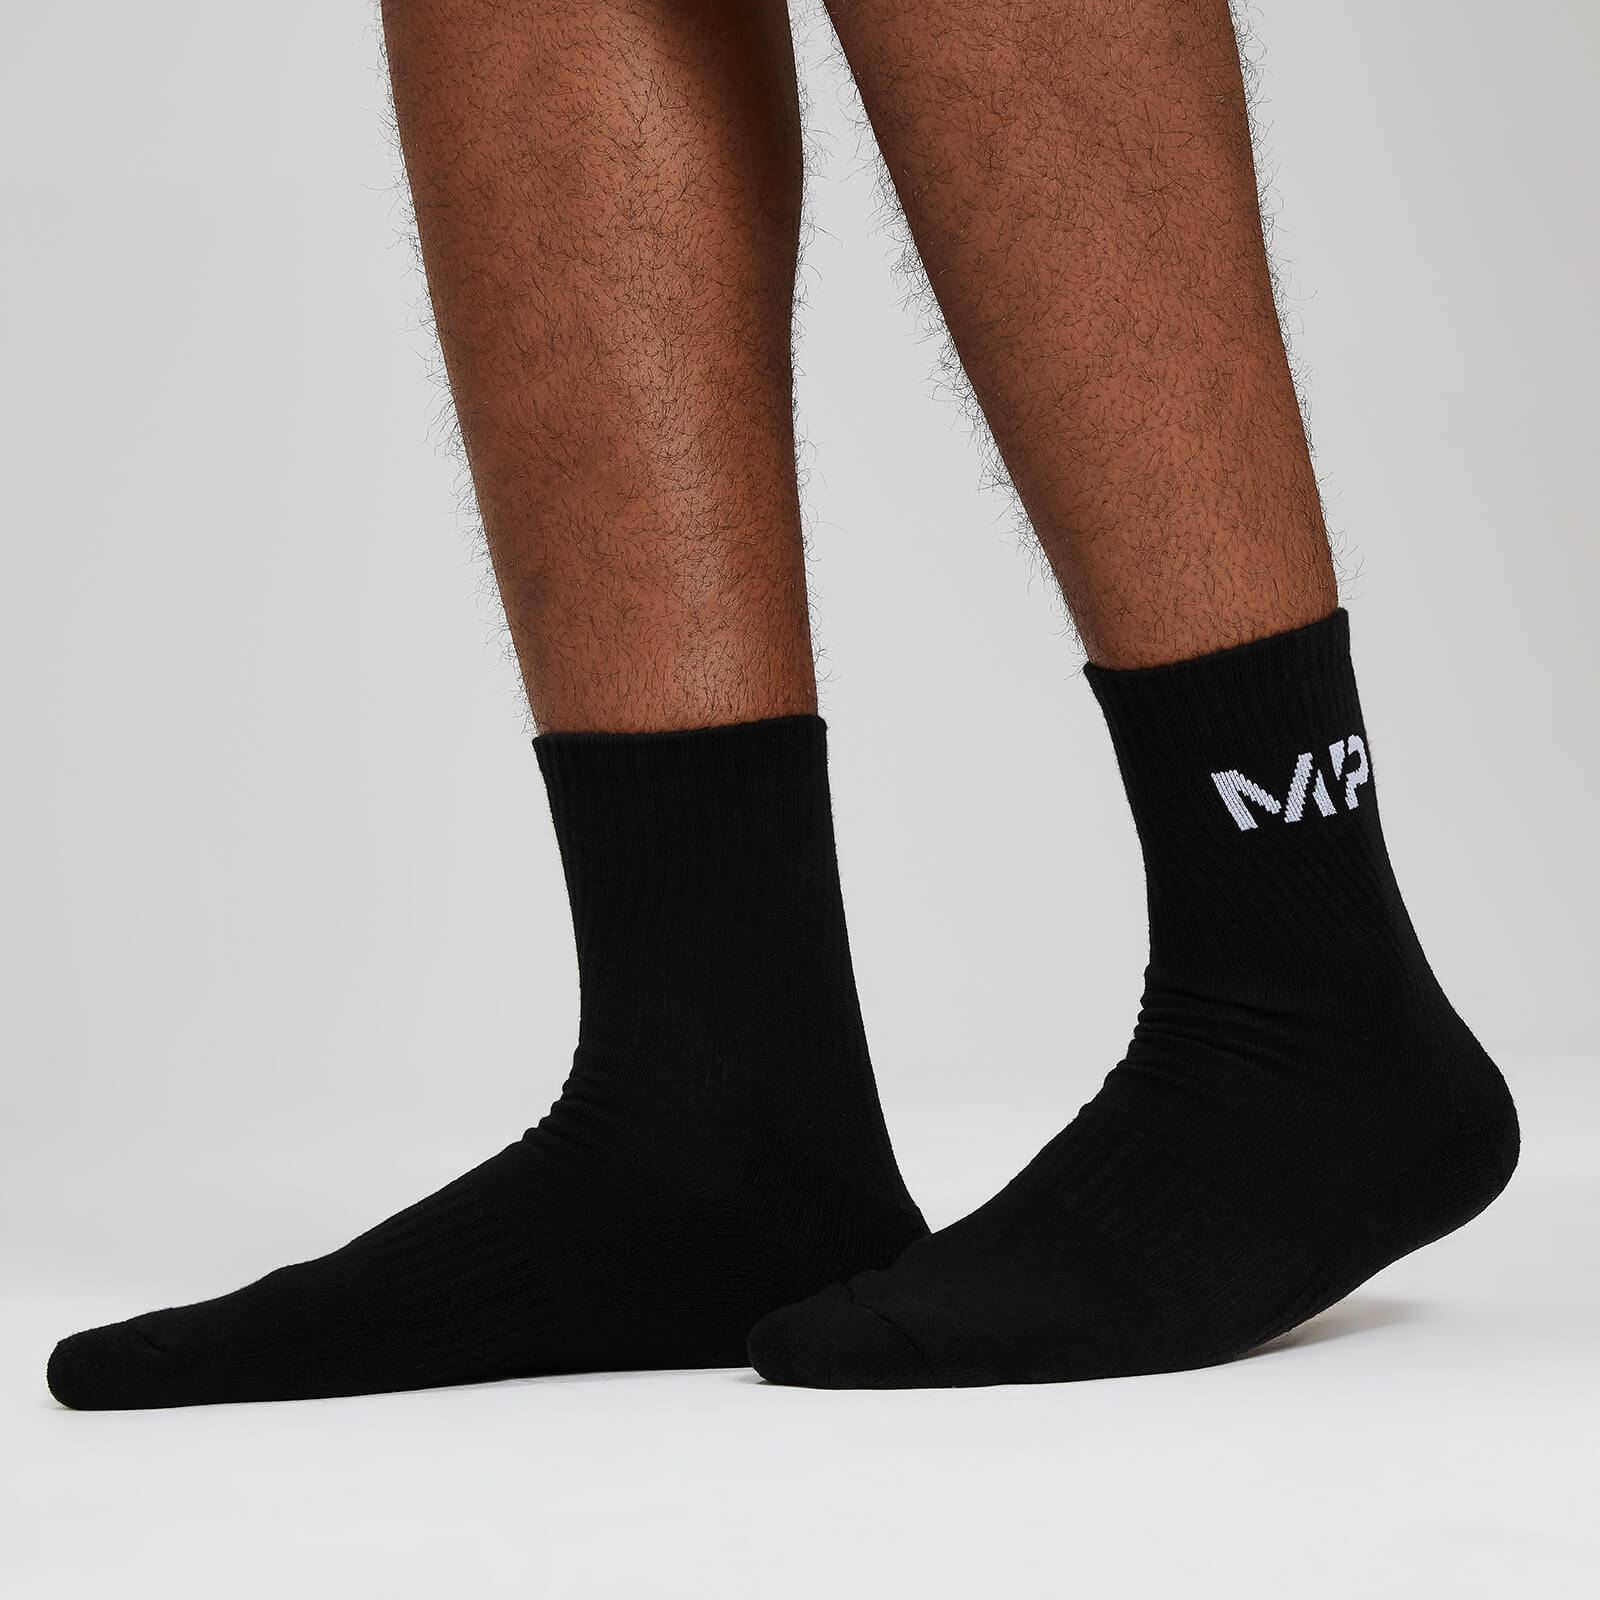 Myprotein MP Essentials Men's Crew Socks - Black (2 Pack) - UK 9-12